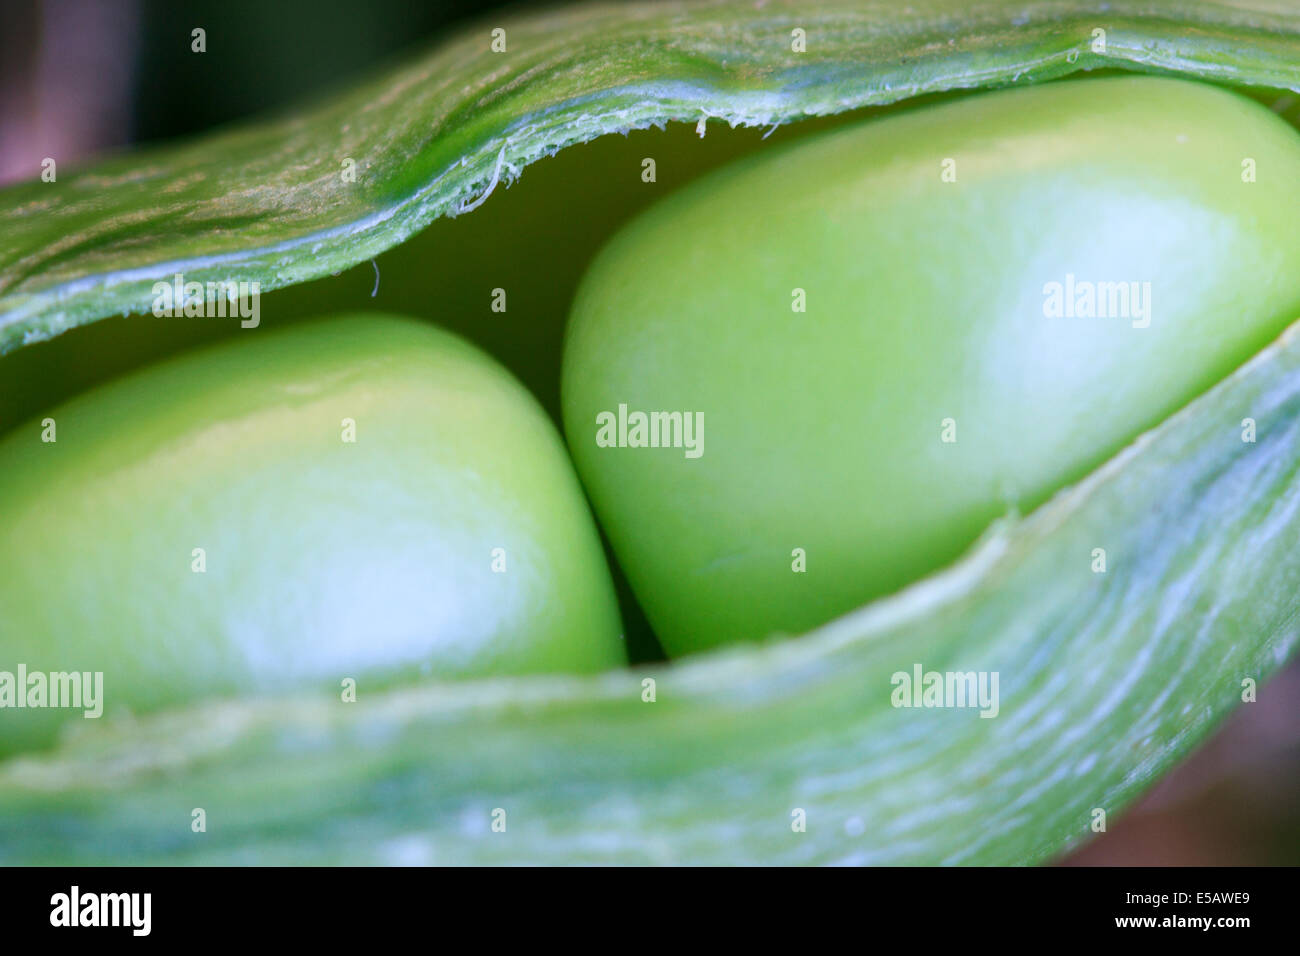 Two peas in a pod just harvested from a home garden - Stock Image